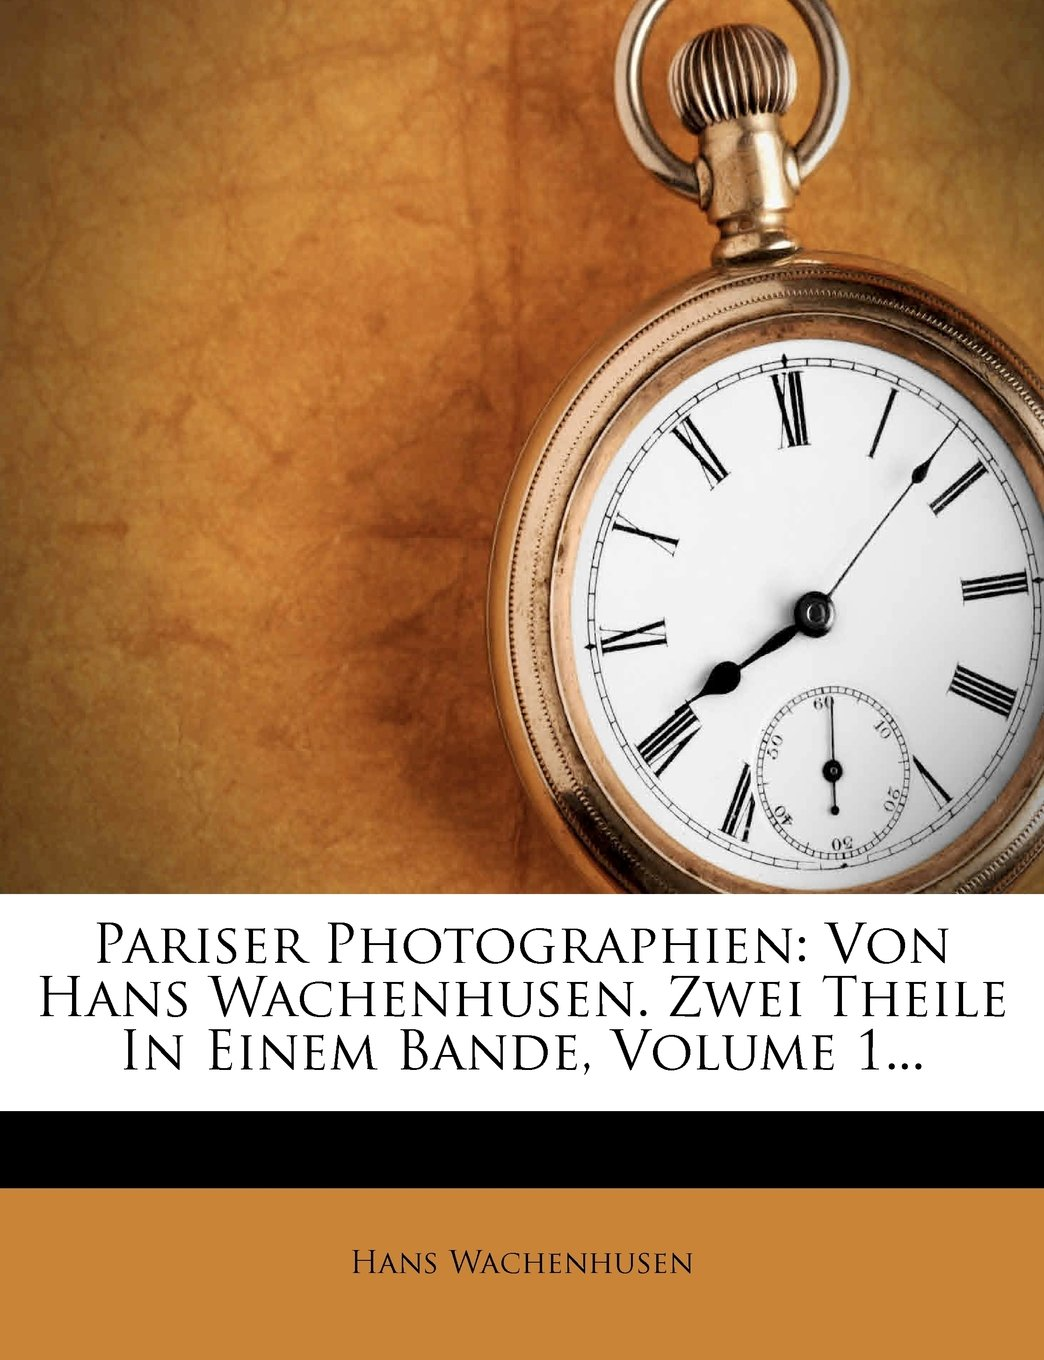 Pariser Photographien: Von Hans Wachenhusen. Zwei Theile In Einem Bande, Volume 1... (German Edition) ebook